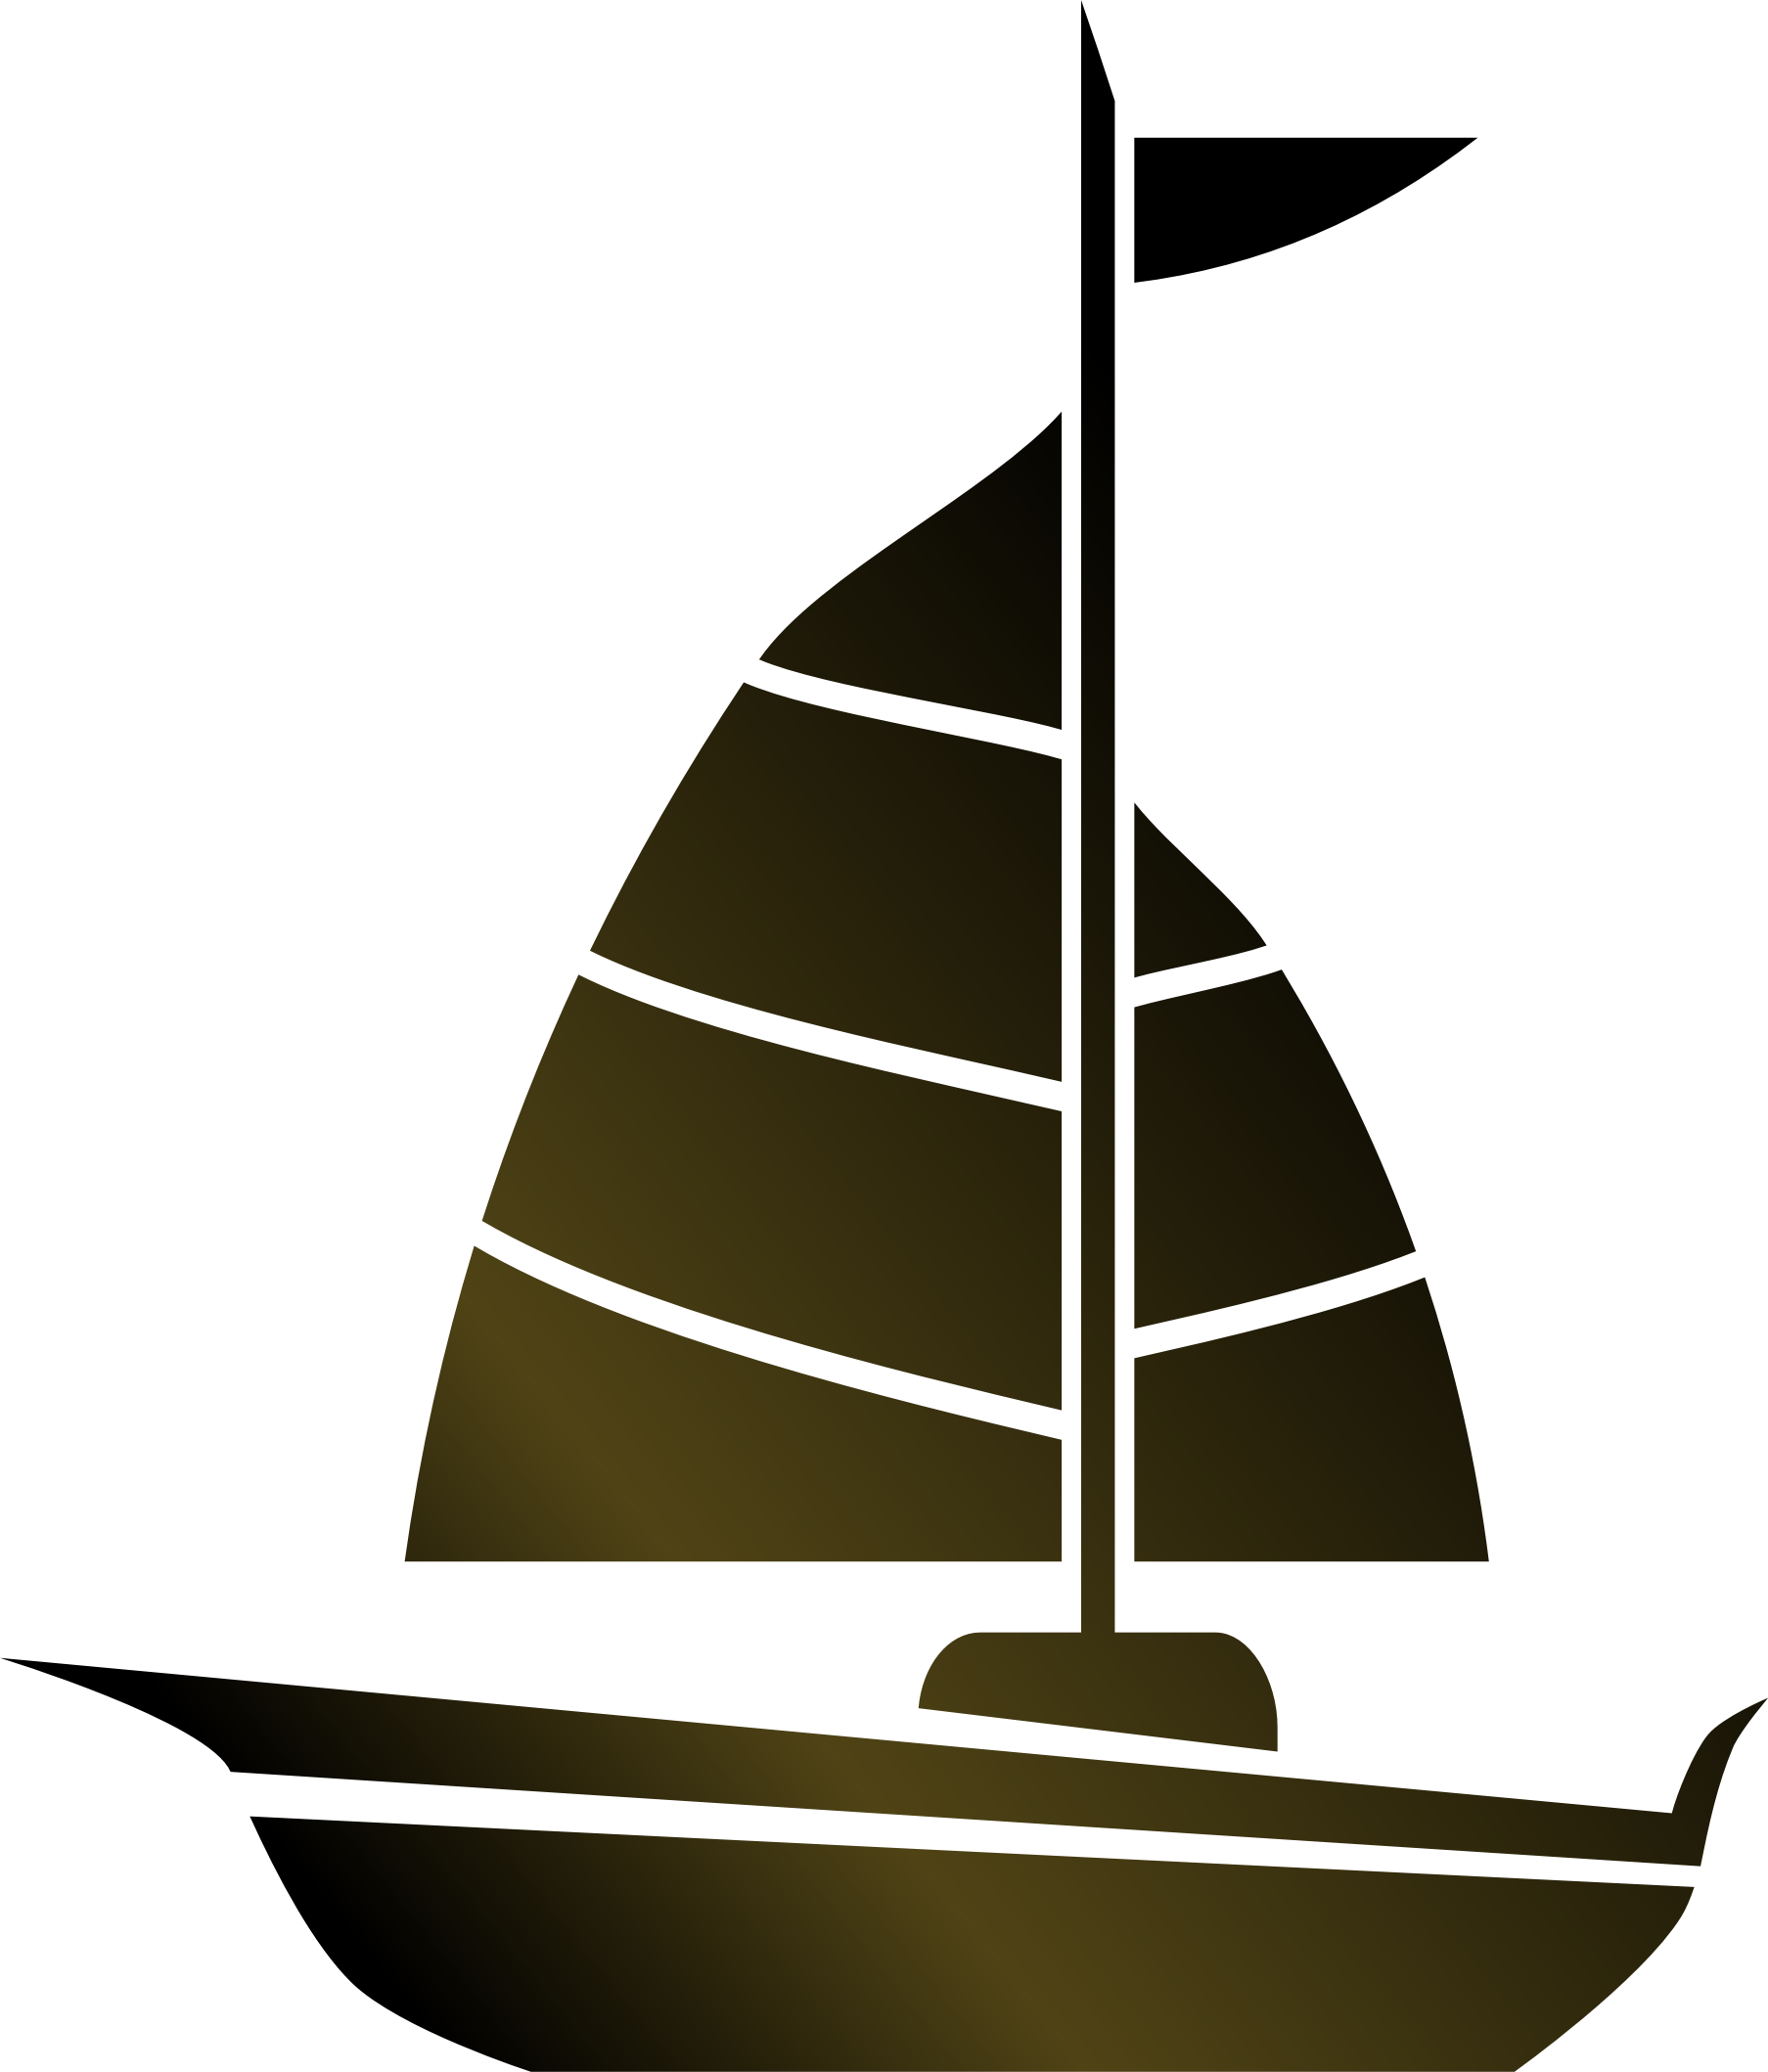 Paper clipart sailboat. Simple by viscious speed